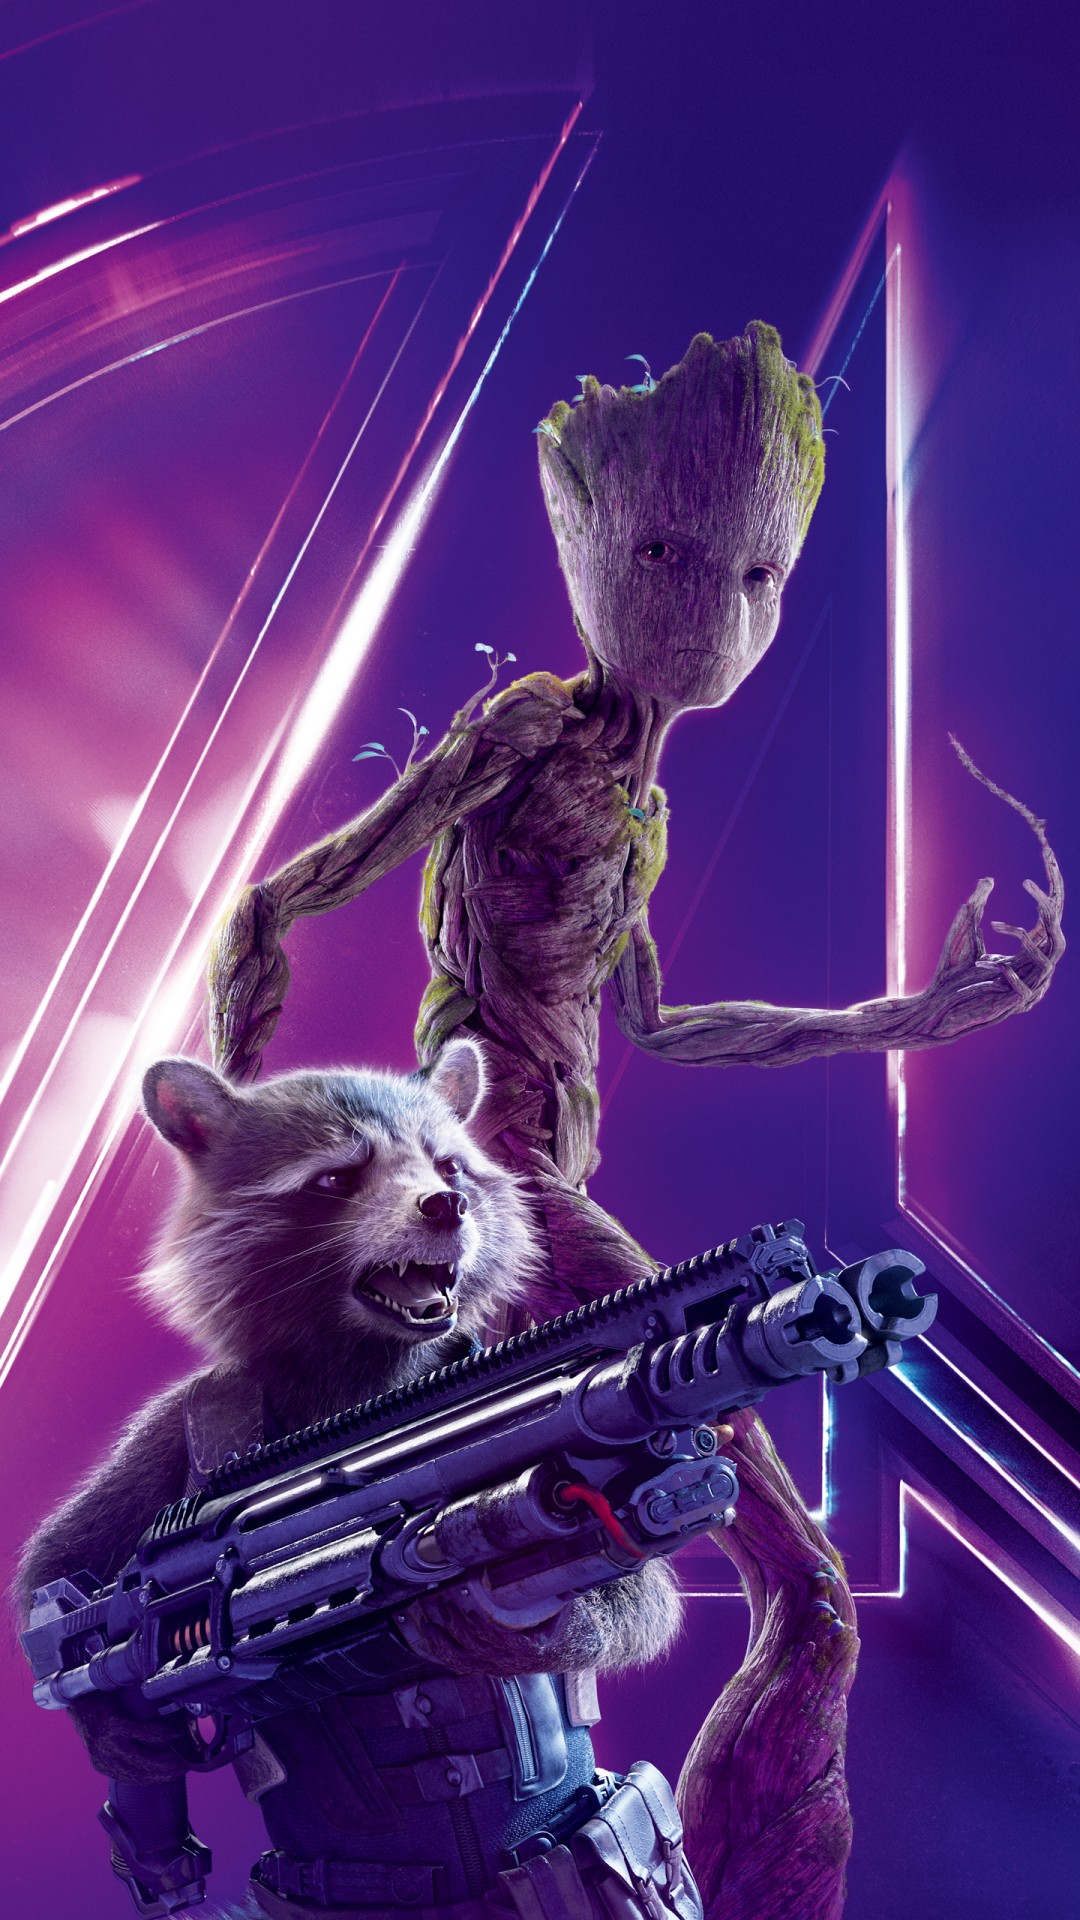 Groot Wallpaper Iphone X Rocket Raccoon In Avengers Infinity War 4k 8k Wallpapers